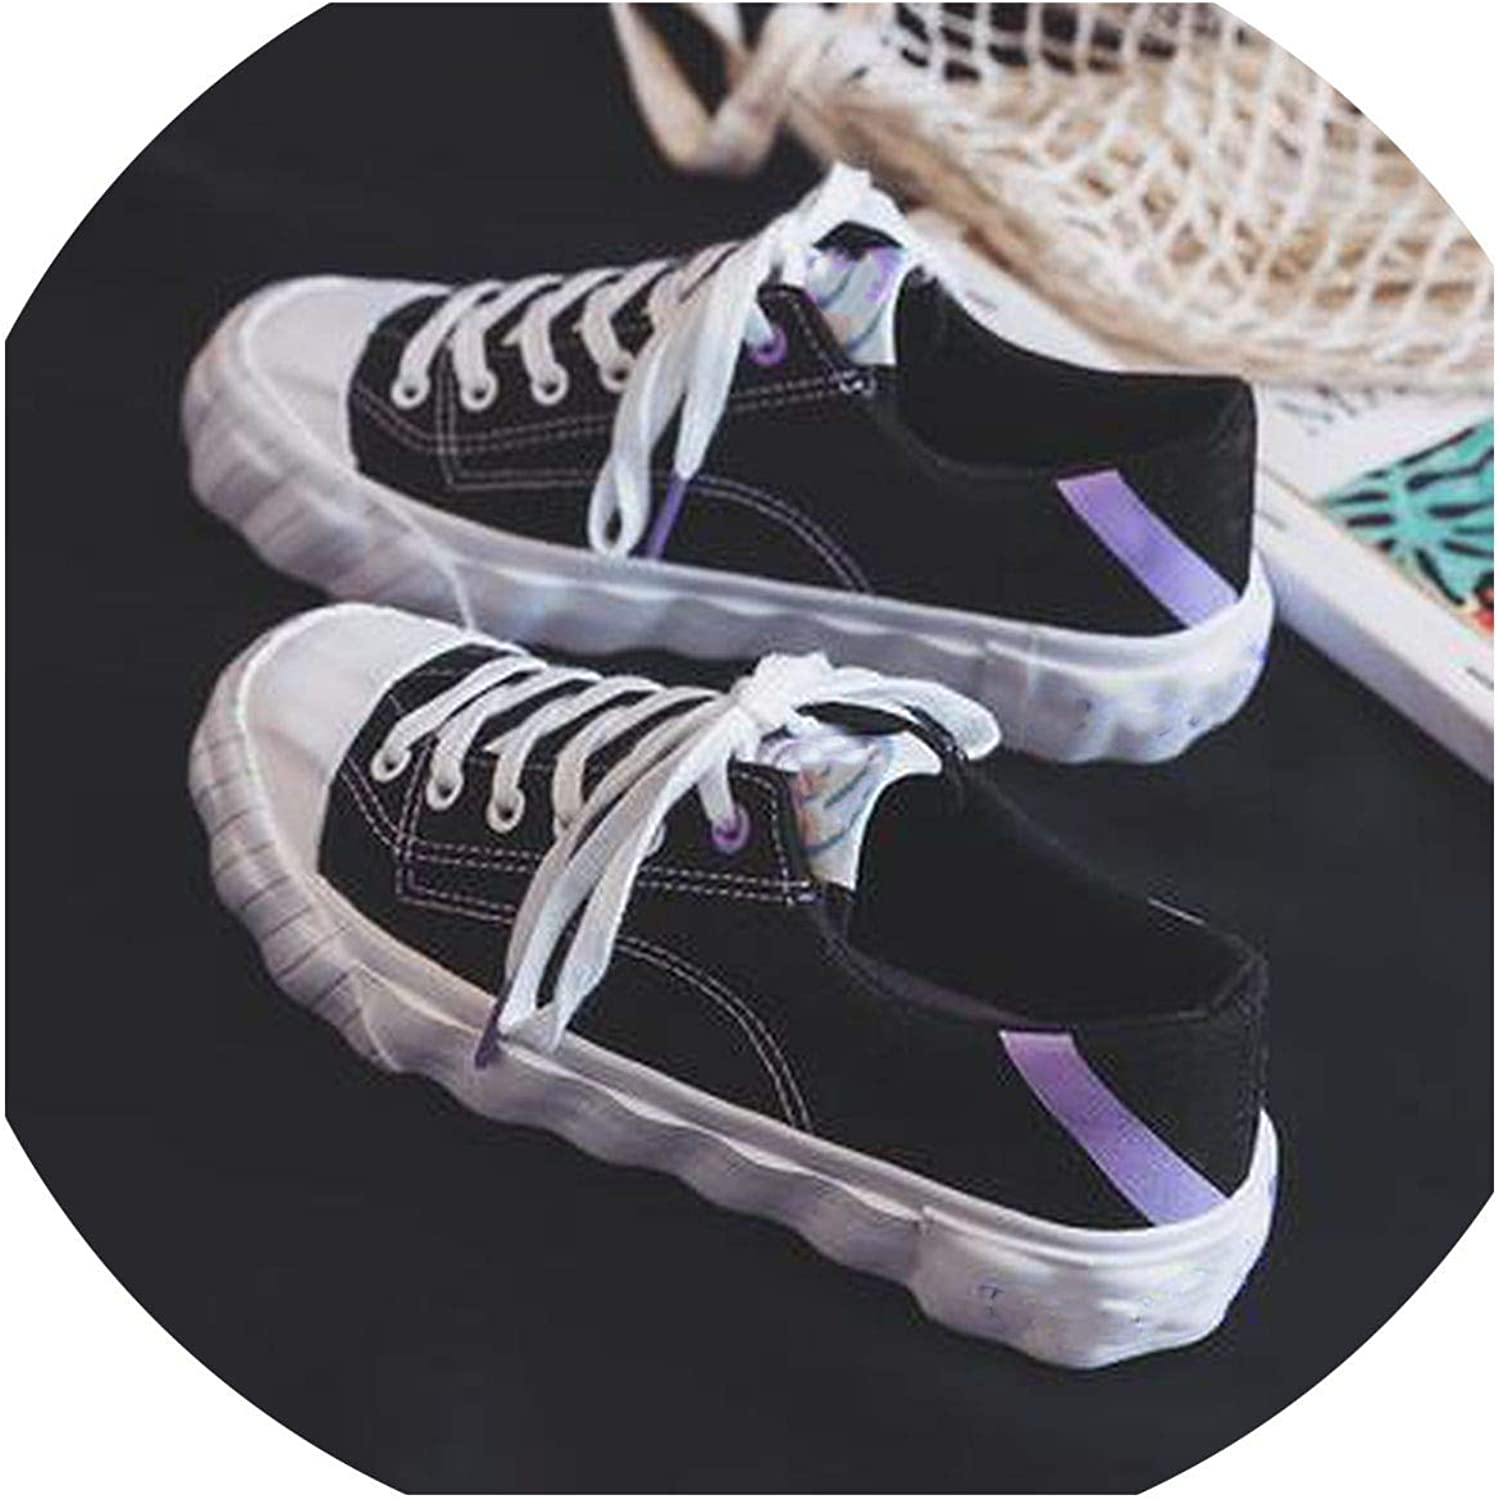 Biu-biu fashion-sneakers Breathable Leopard Casual Women Vulcanize shoes Lace Up Candy colors Ladies Canvas shoes